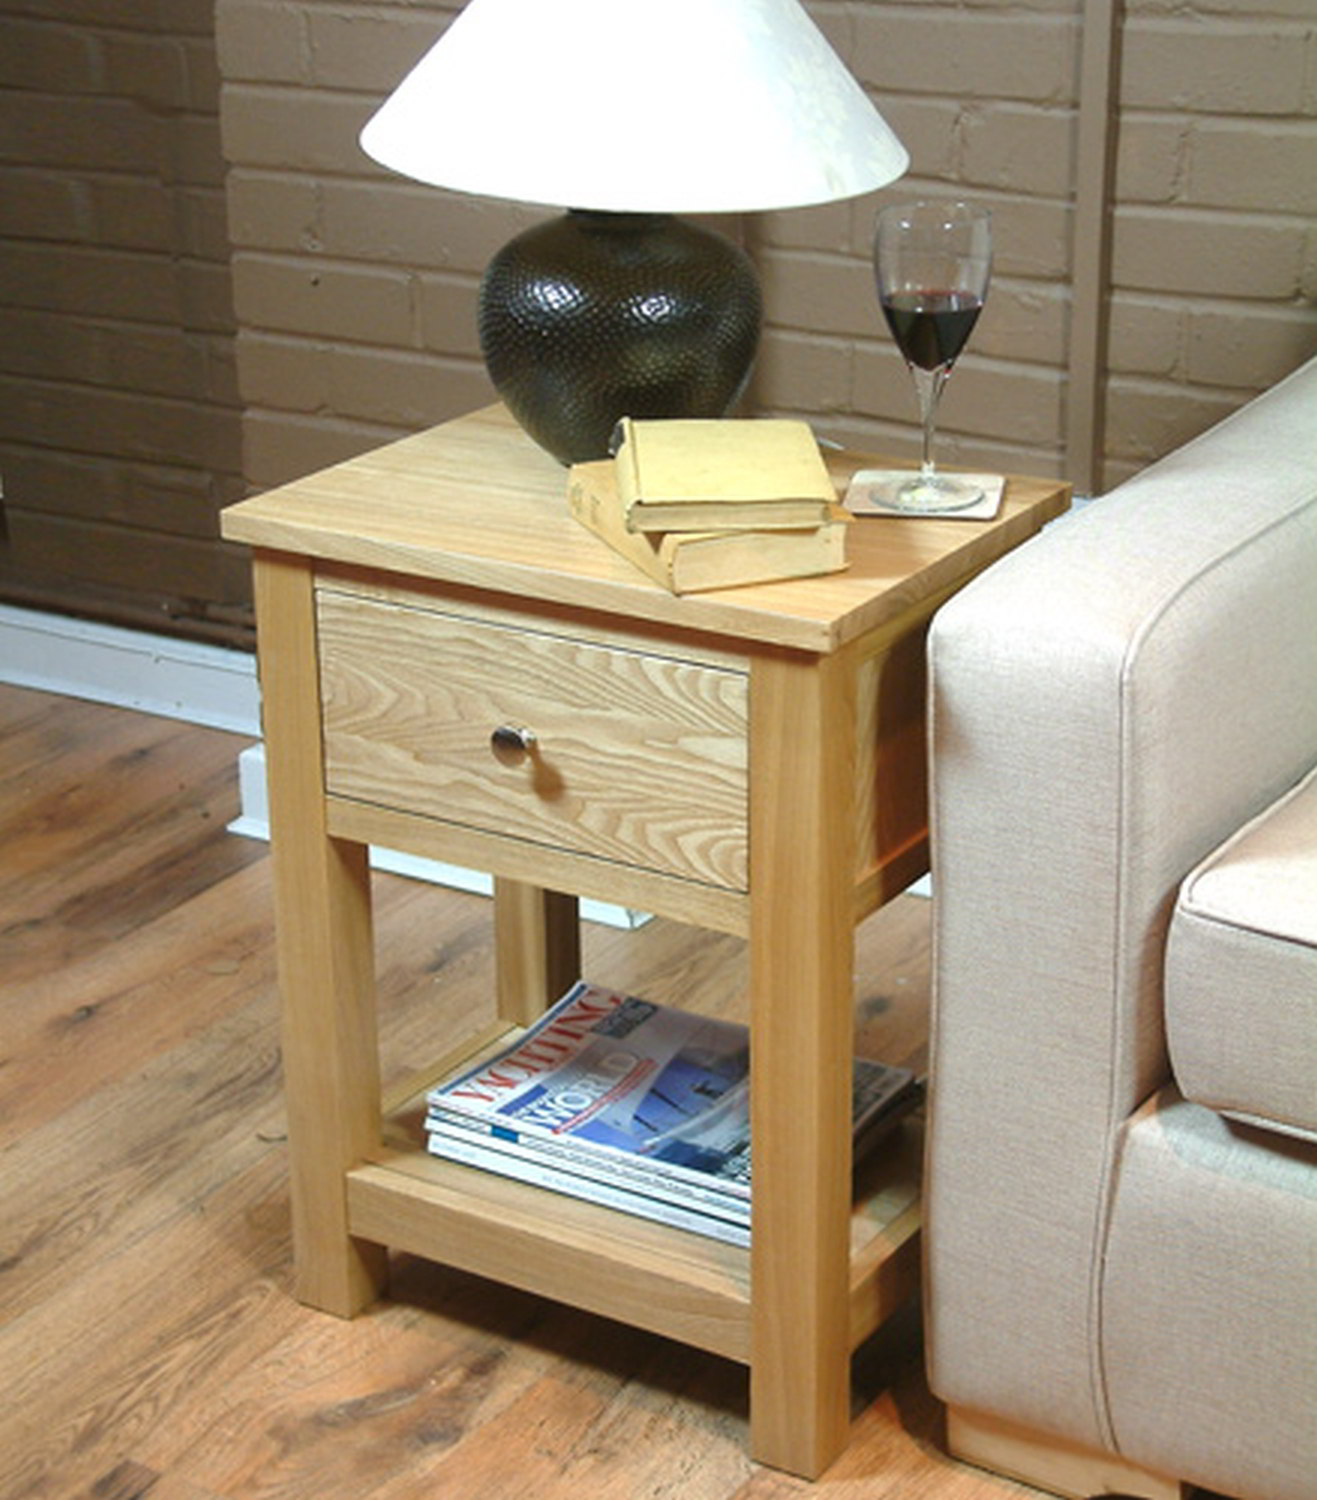 conran solid oak living room furniture side end lamp table with drawer